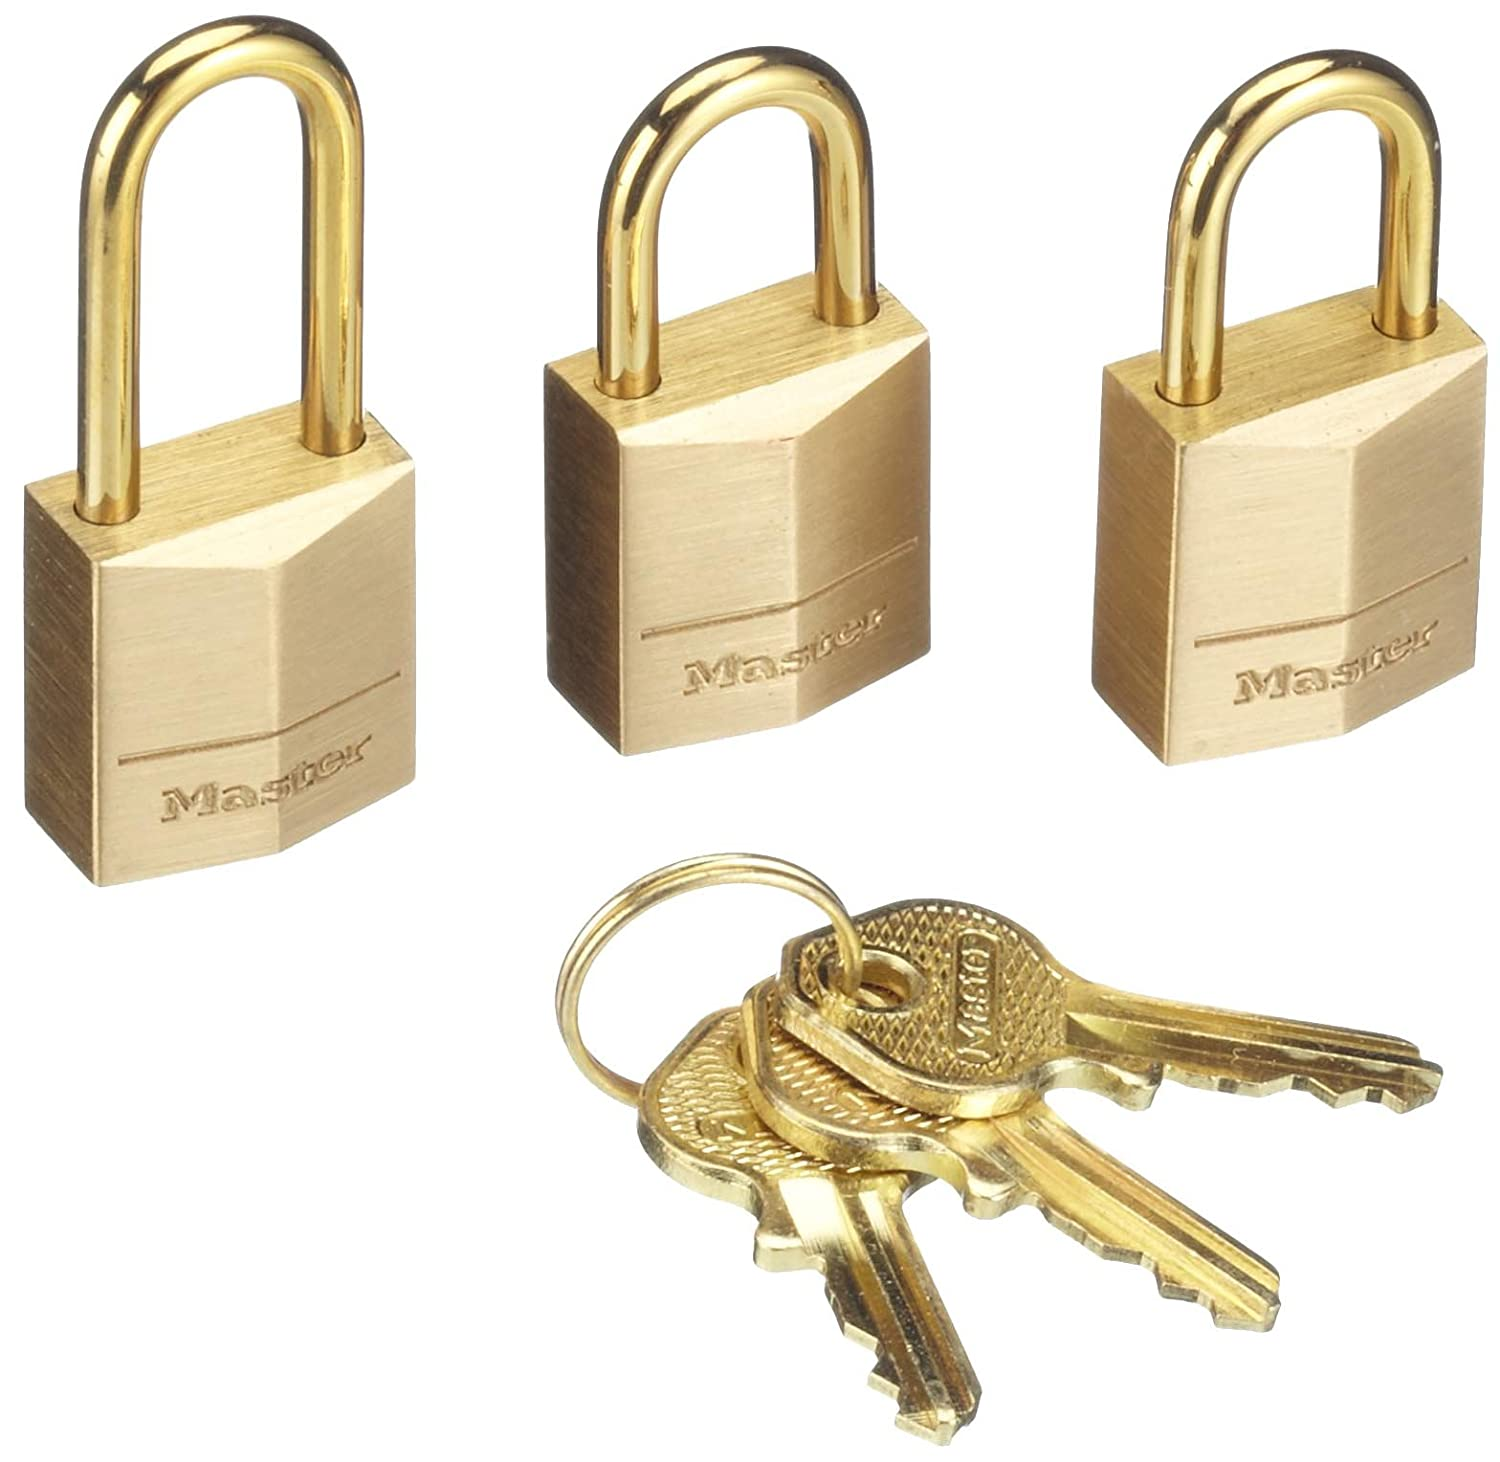 674e721d90a8 Master Lock Padlock, Solid Brass Body Lock, Keyed Alike, Best Used for  Backpacks, Luggage, Computer Bags and More (Pack of 3)